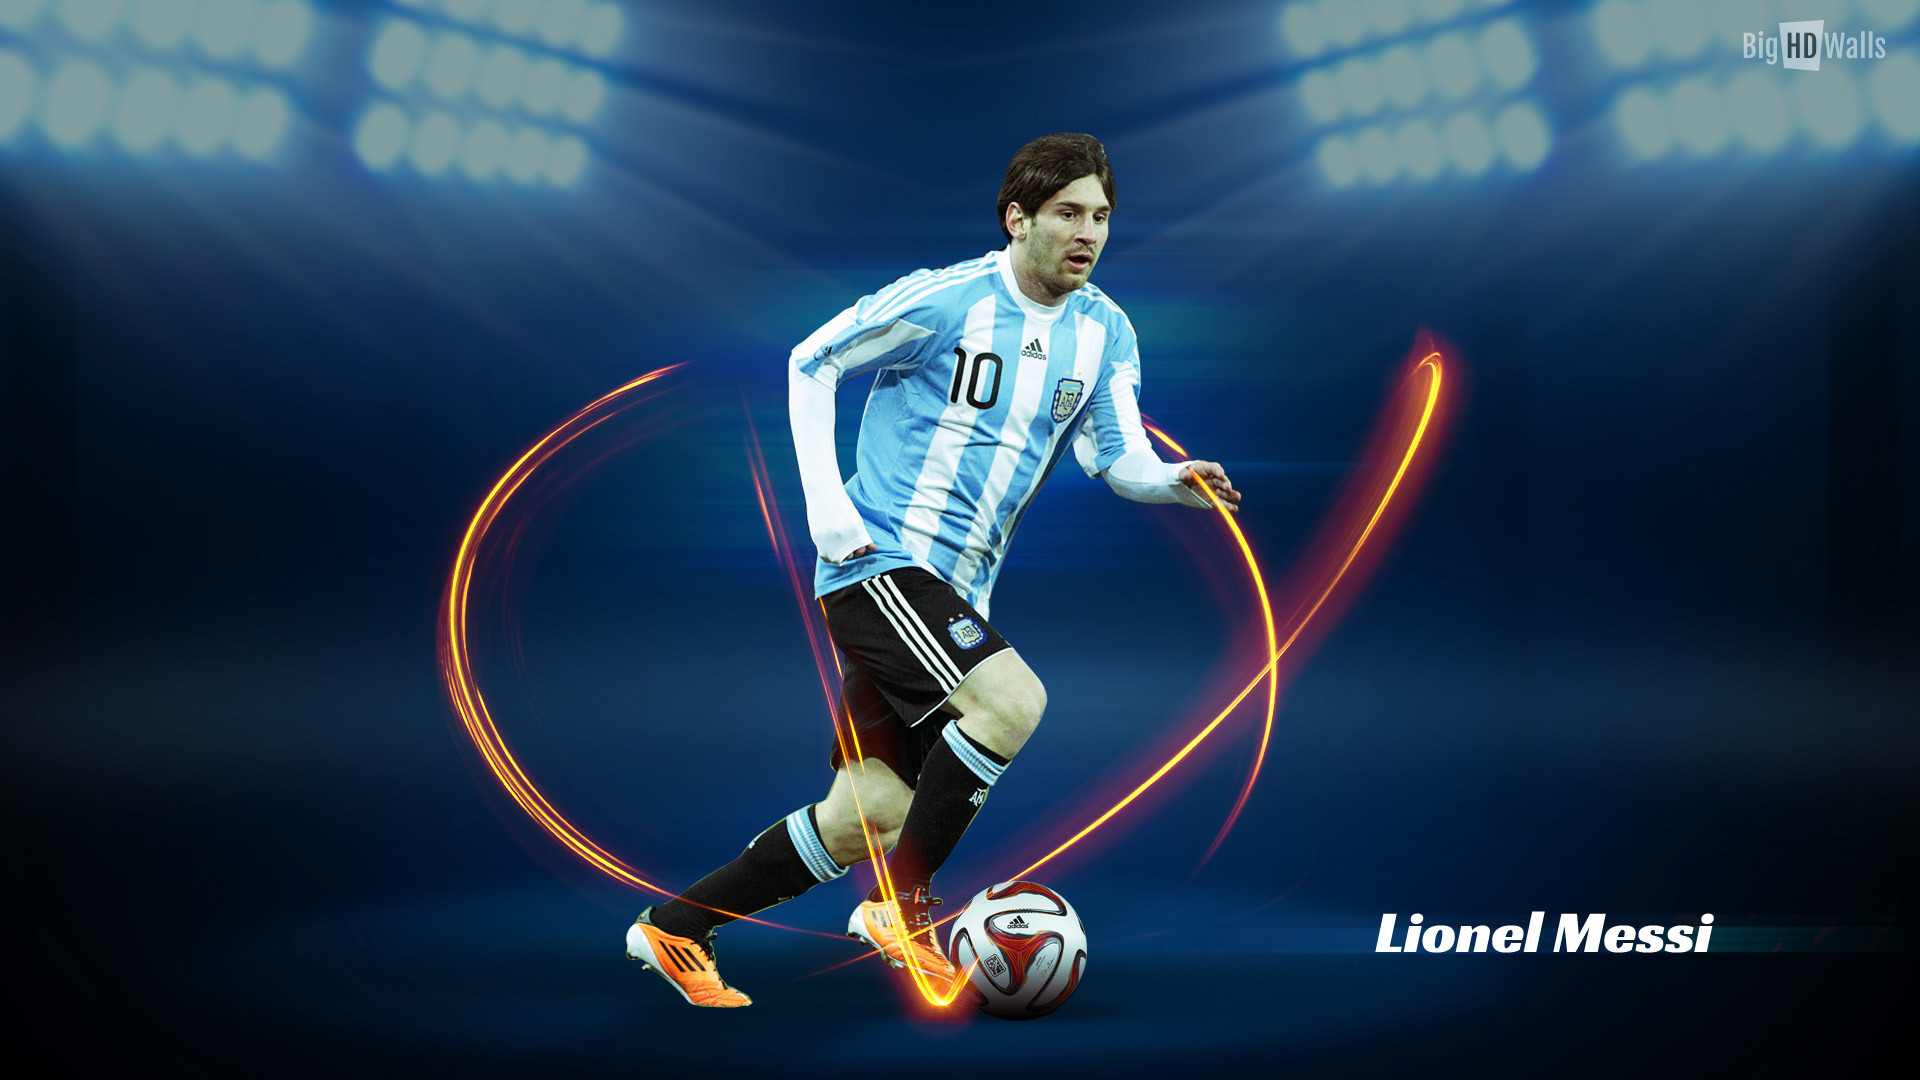 Shiva 3d Name Wallpapers Download Lionel Messi 2018 Wallpapers 80 Images